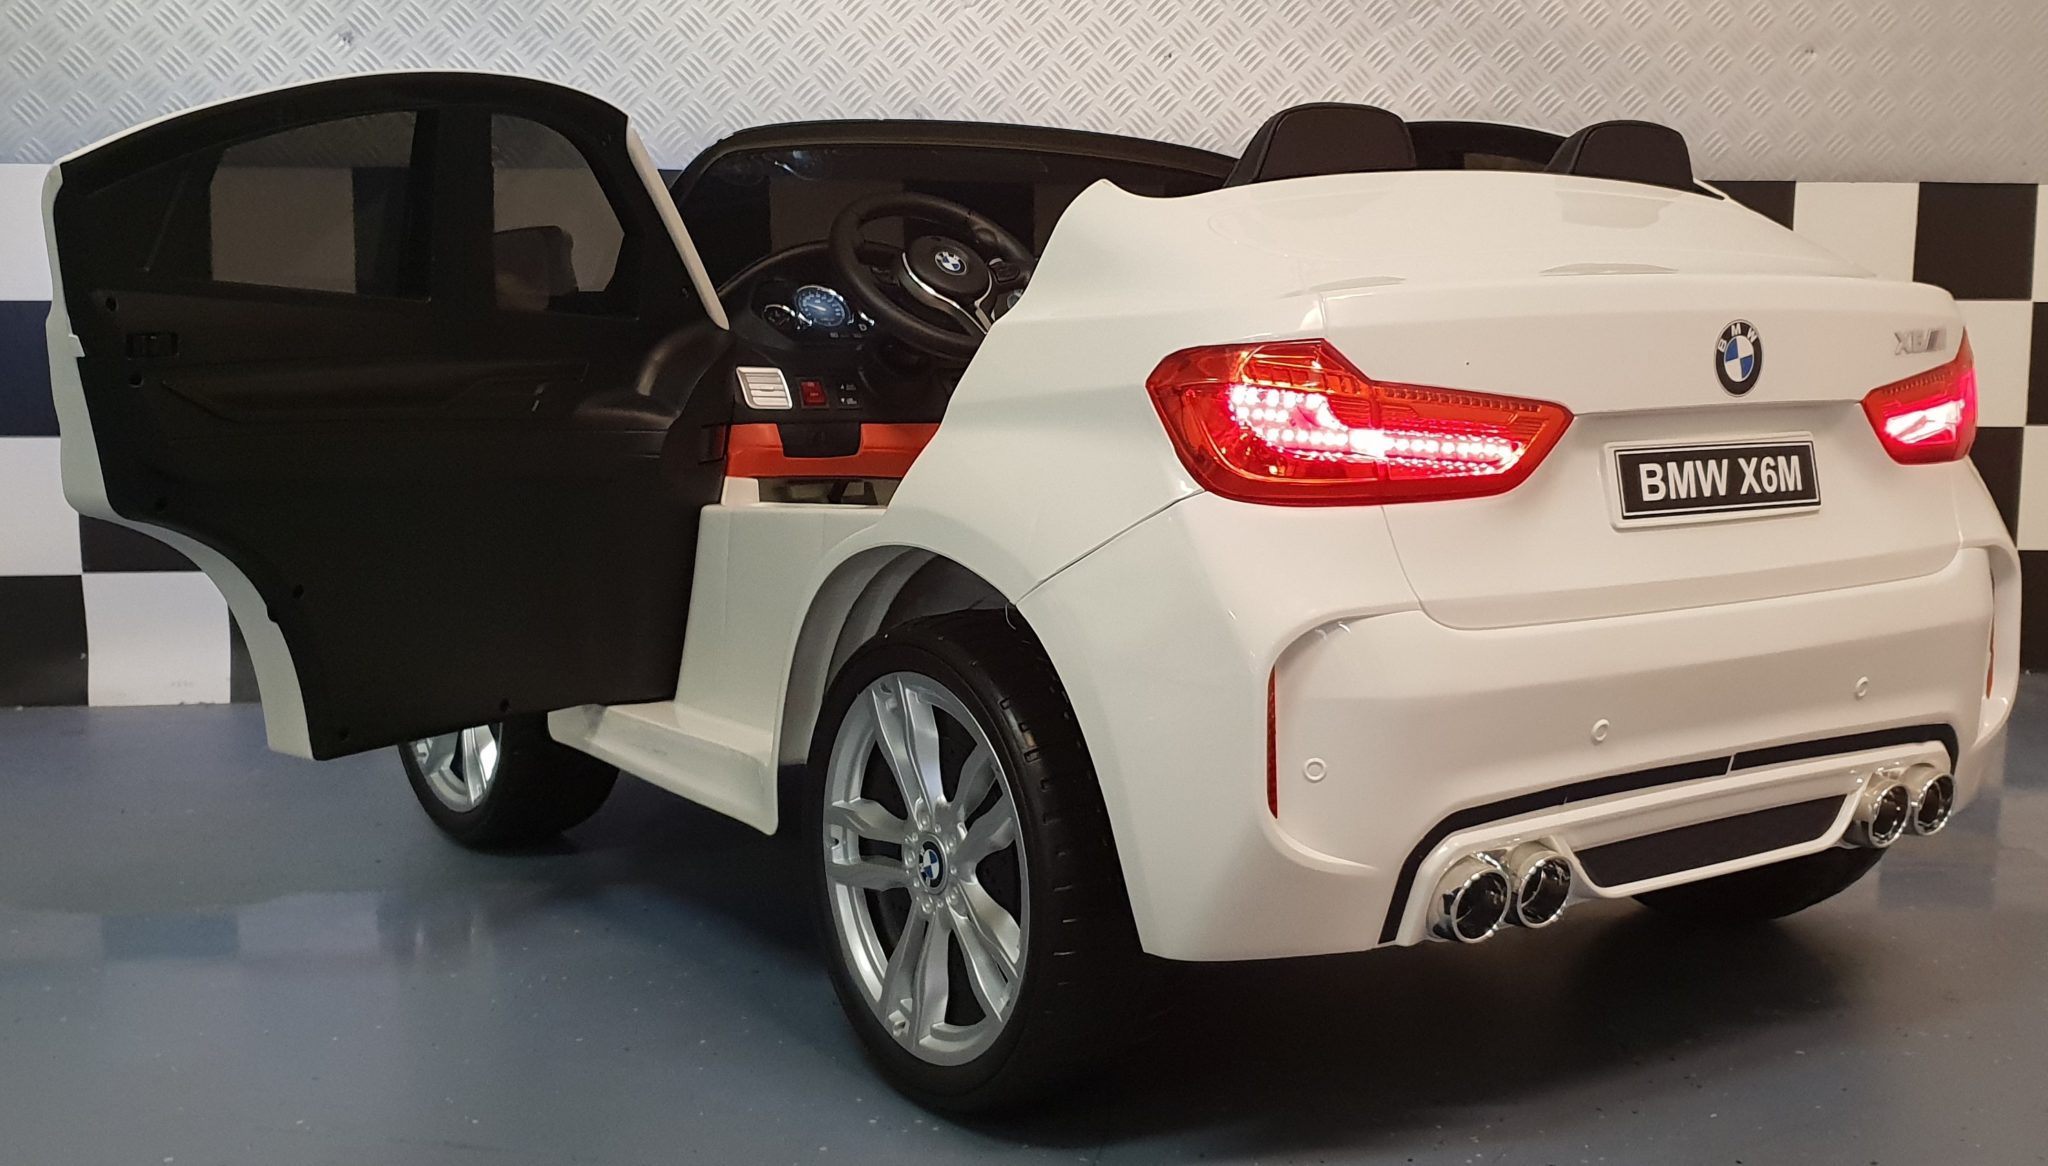 bmw x6 m serie kinderauto 2 persoons wit 12v 2 4g rc. Black Bedroom Furniture Sets. Home Design Ideas